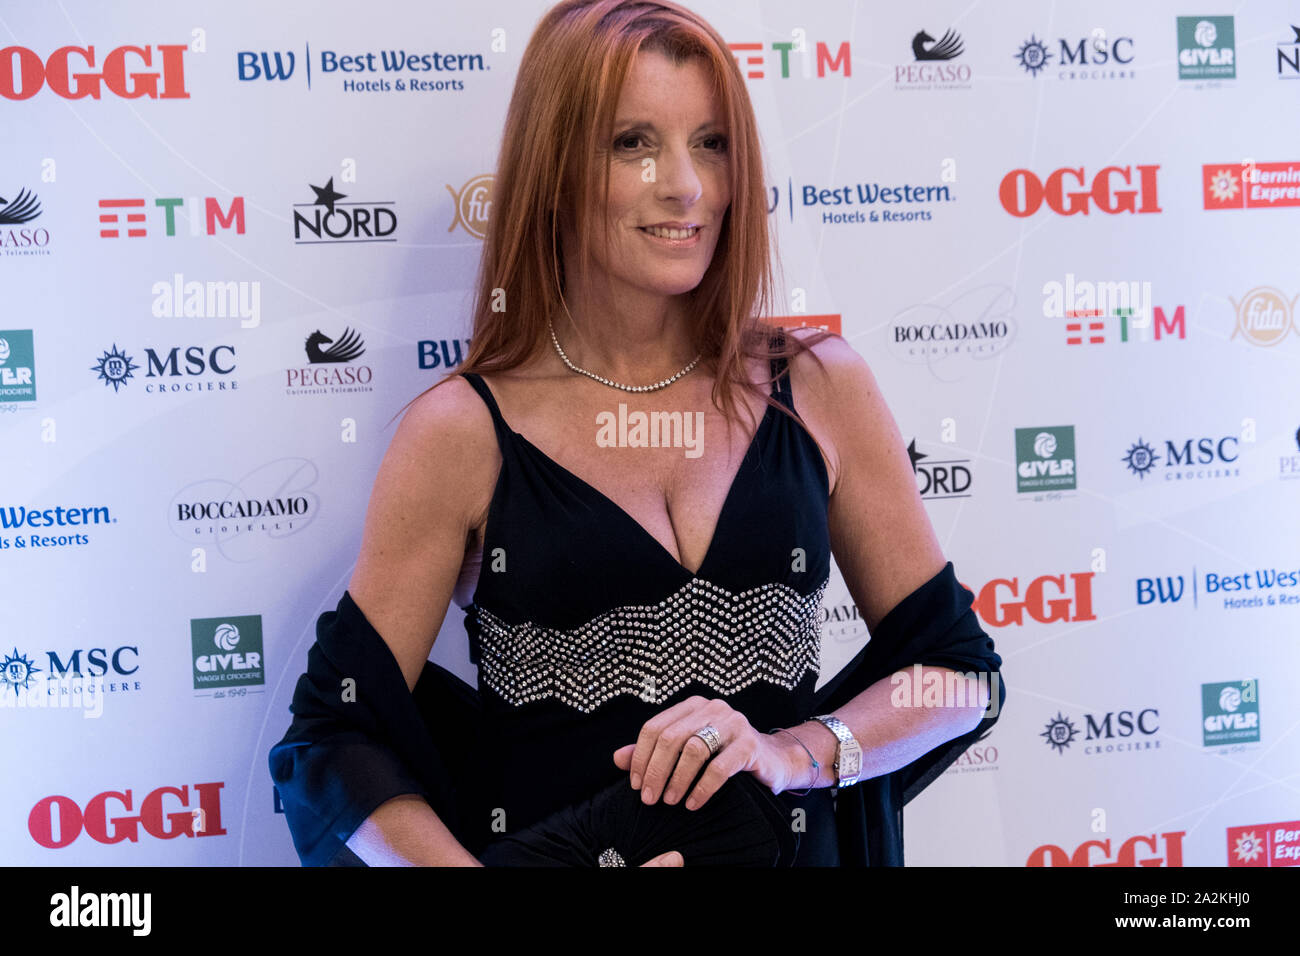 Deputy Michela Vittoria Brambilla attends the OGGI magazine's birthday  party, at Principe di Savoia Hotel in Milano Stock Photo - Alamy